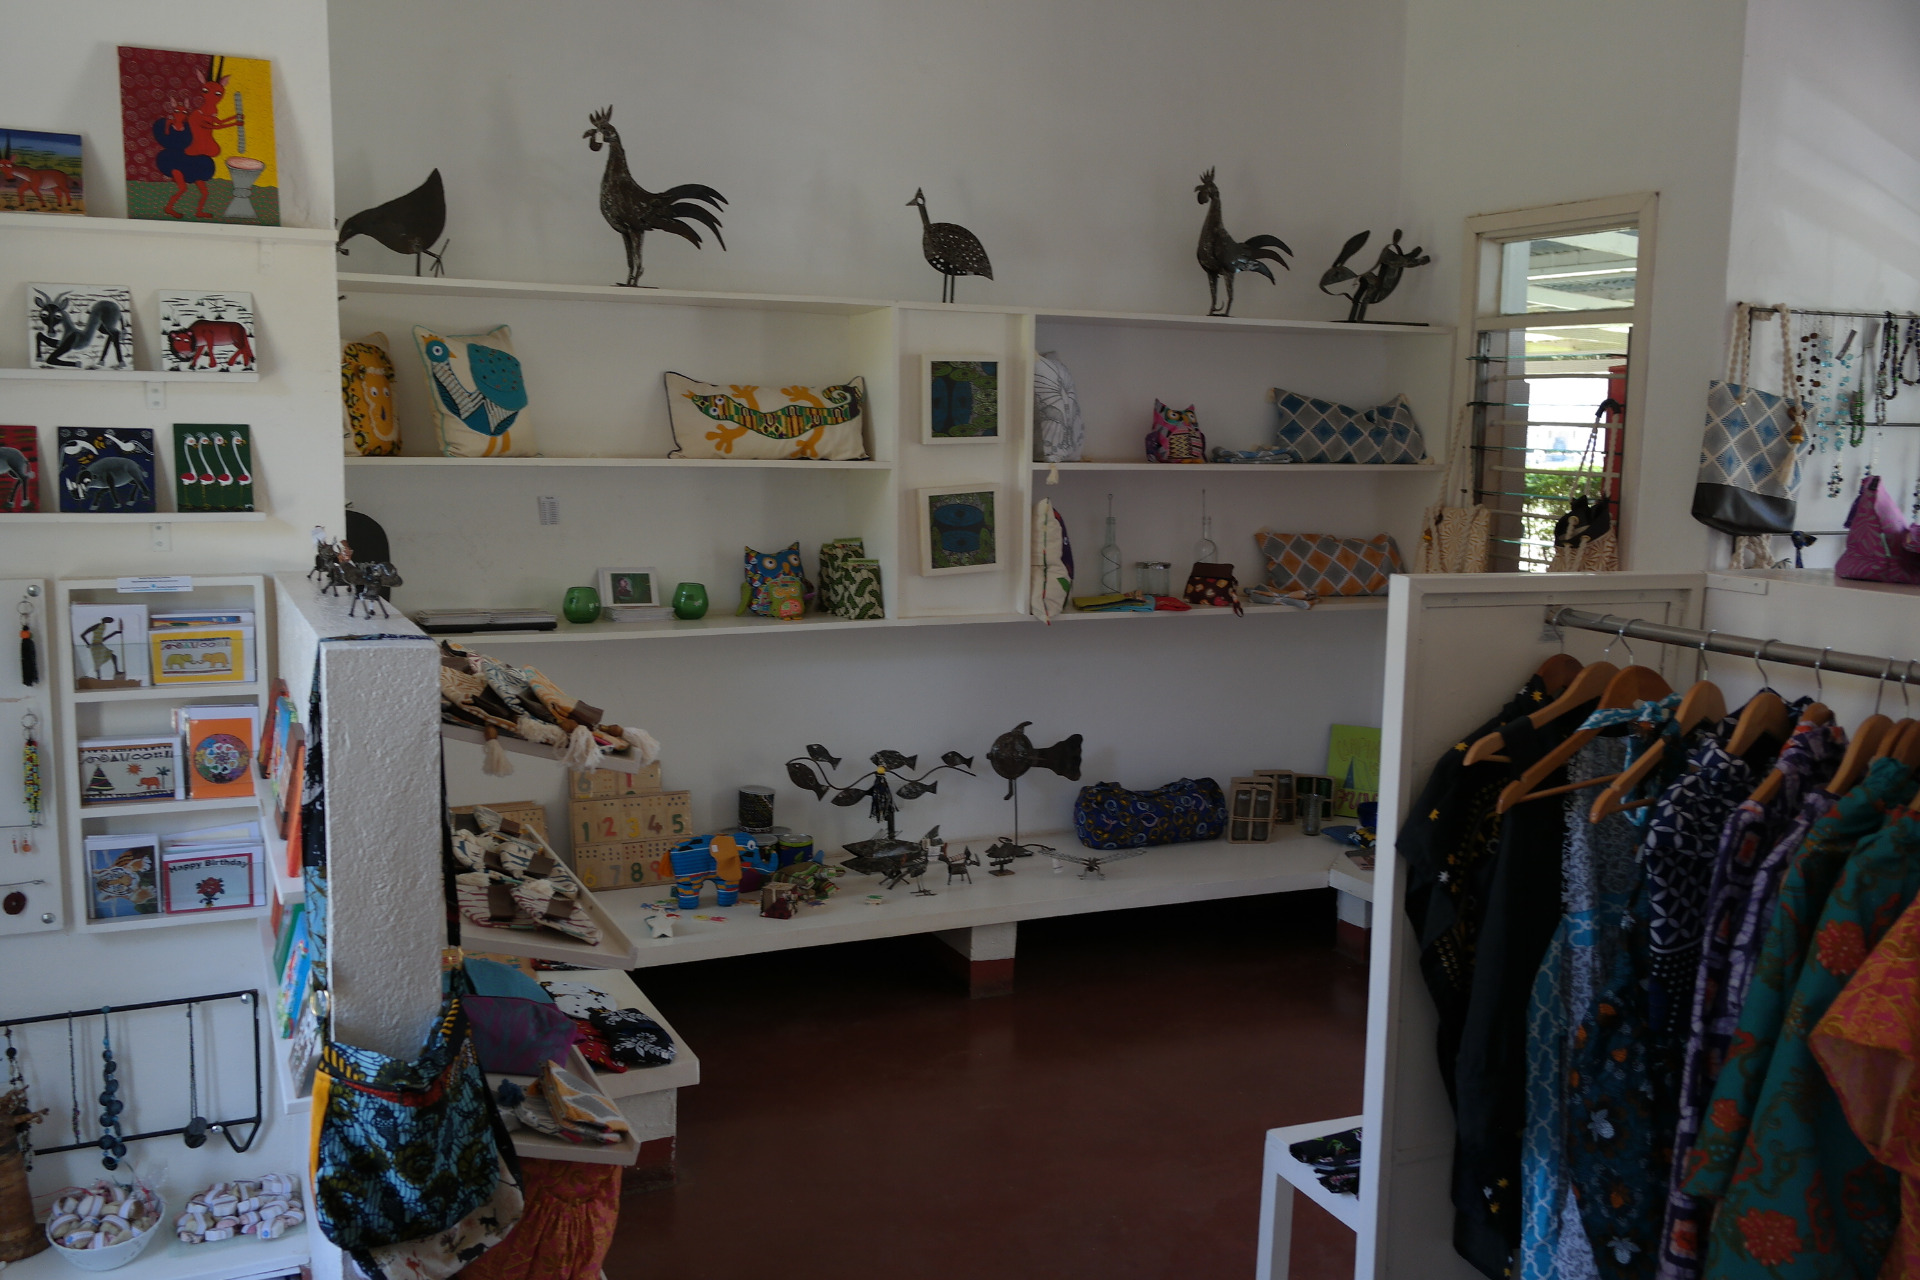 Selling of handmade products in the Tanz-Hand´s-Shop